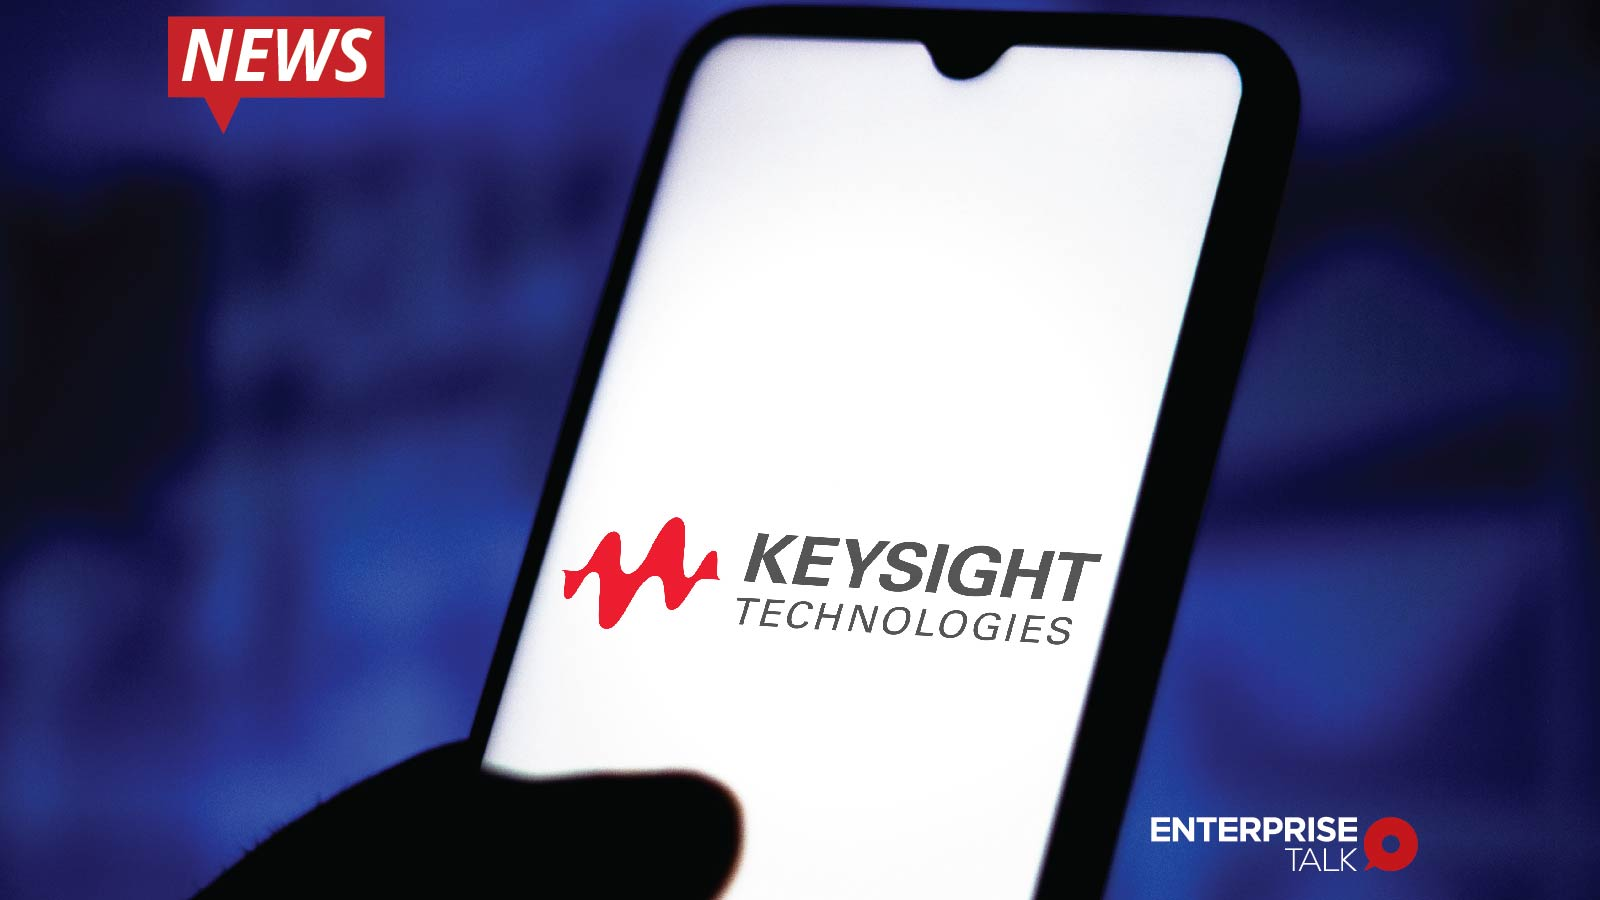 Keysight Introduces Massively Parallel Board Test System to Enable Higher Throughput in a Smaller Footprint